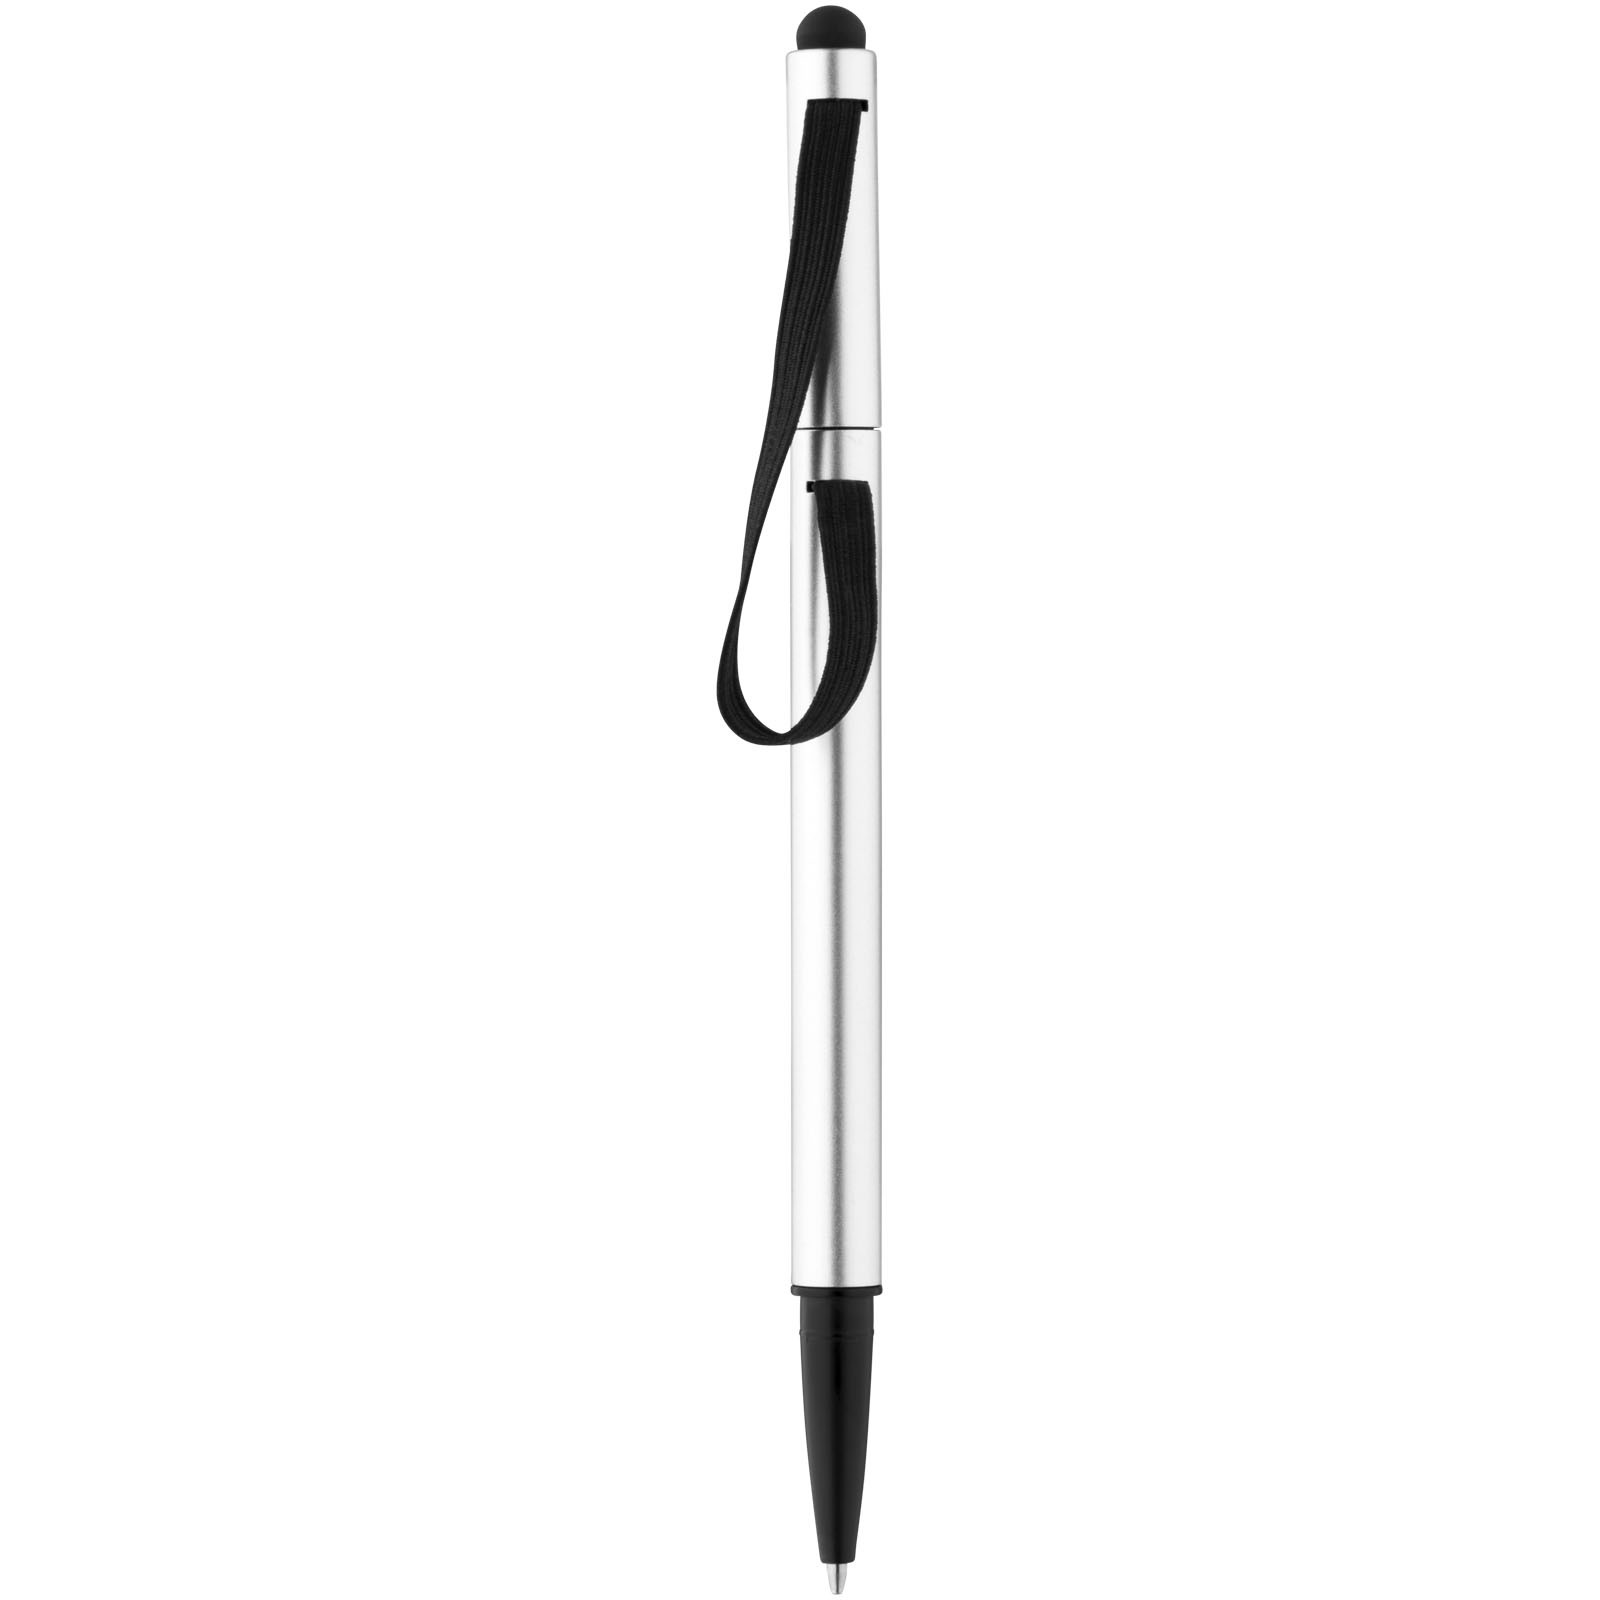 Stretch ballpoint pen with elastic strap - Silver / Solid black